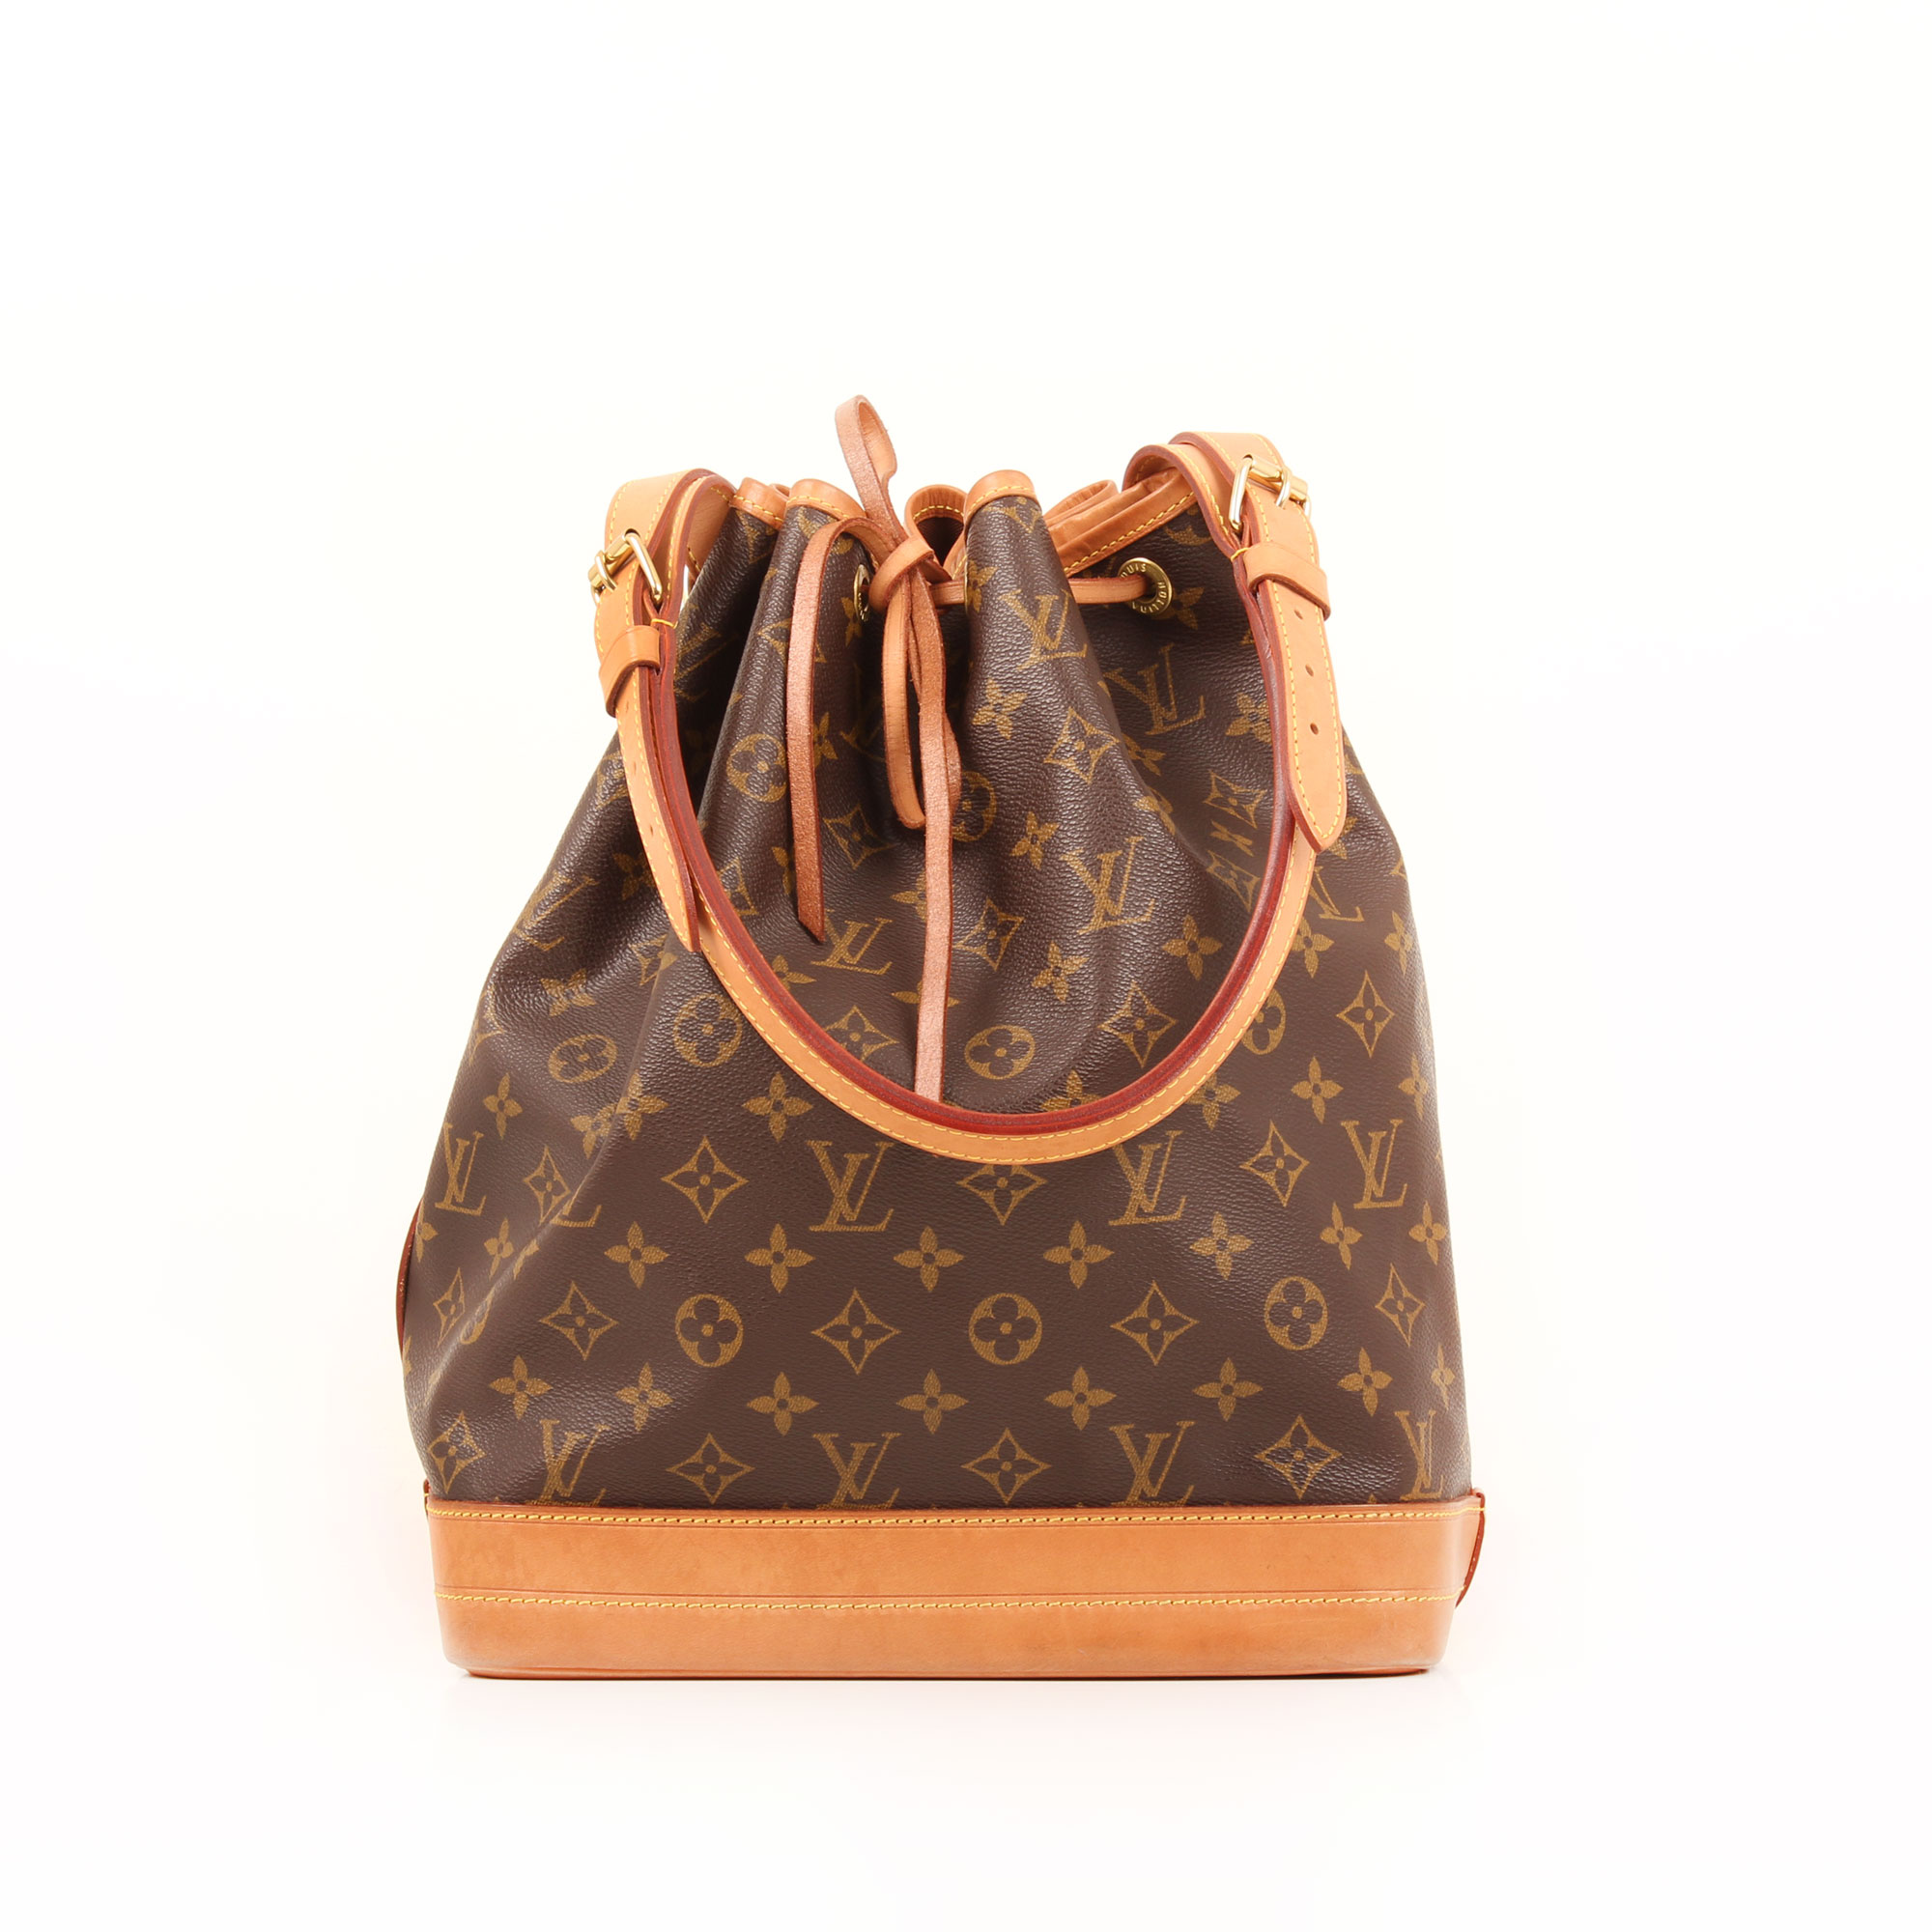 Front image of louis vuitton noe monogram bag